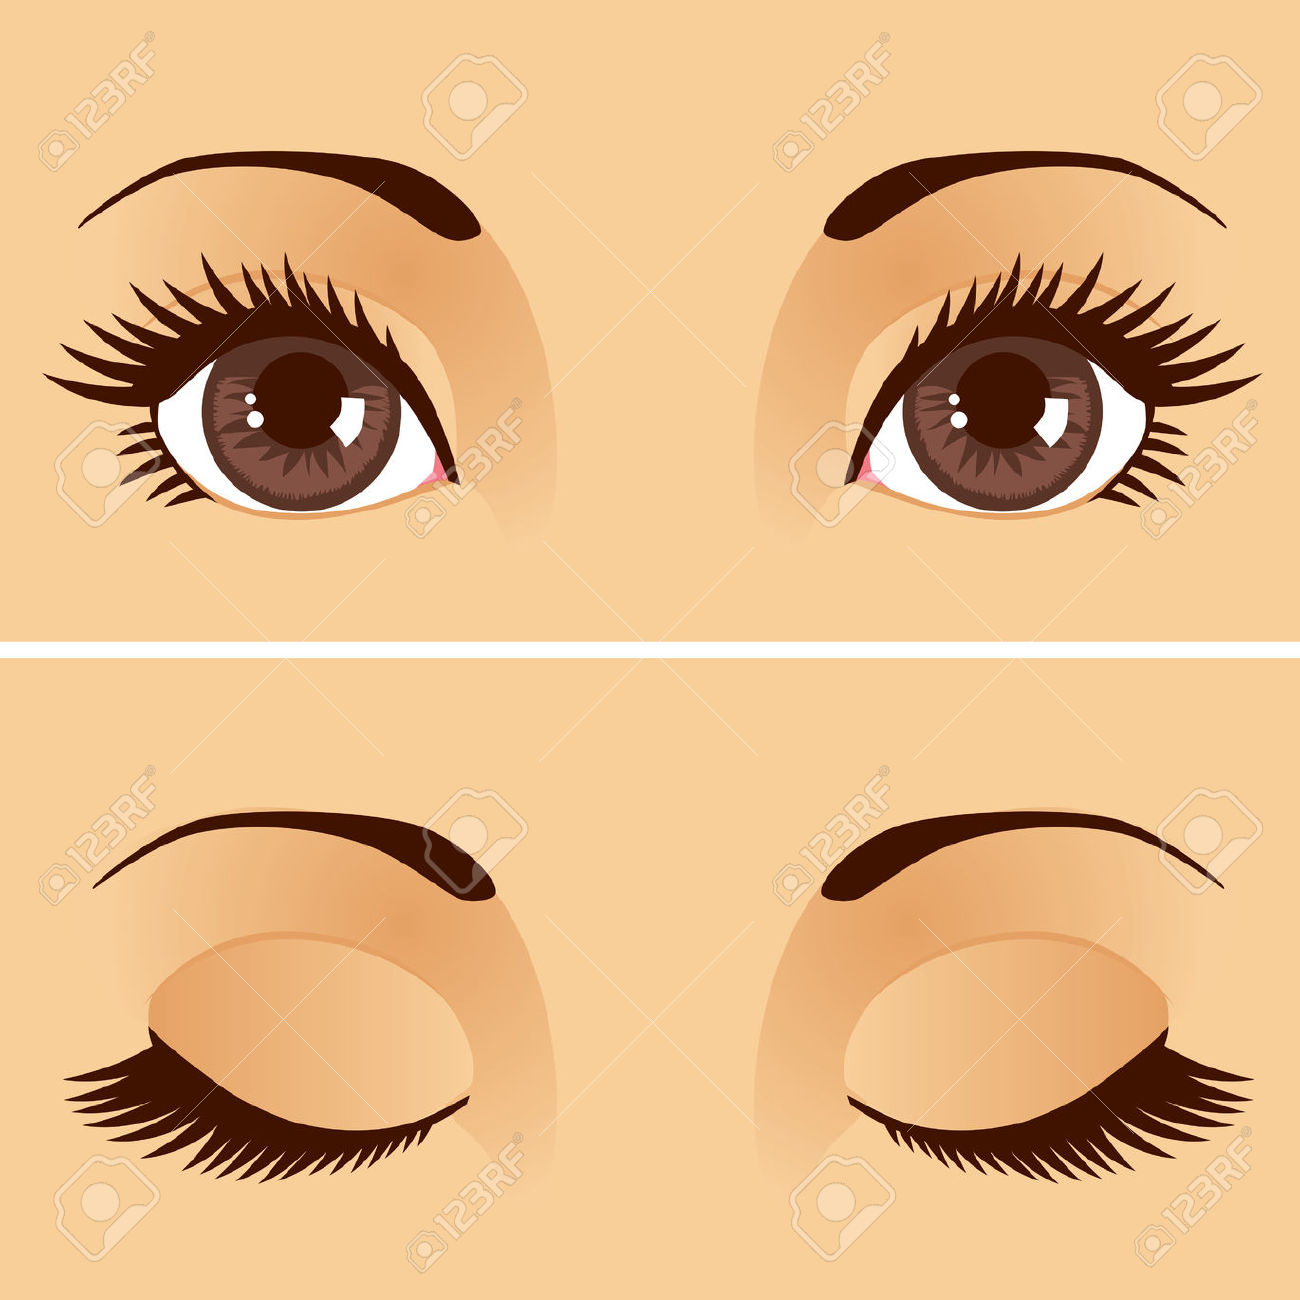 Close eyes clipart.